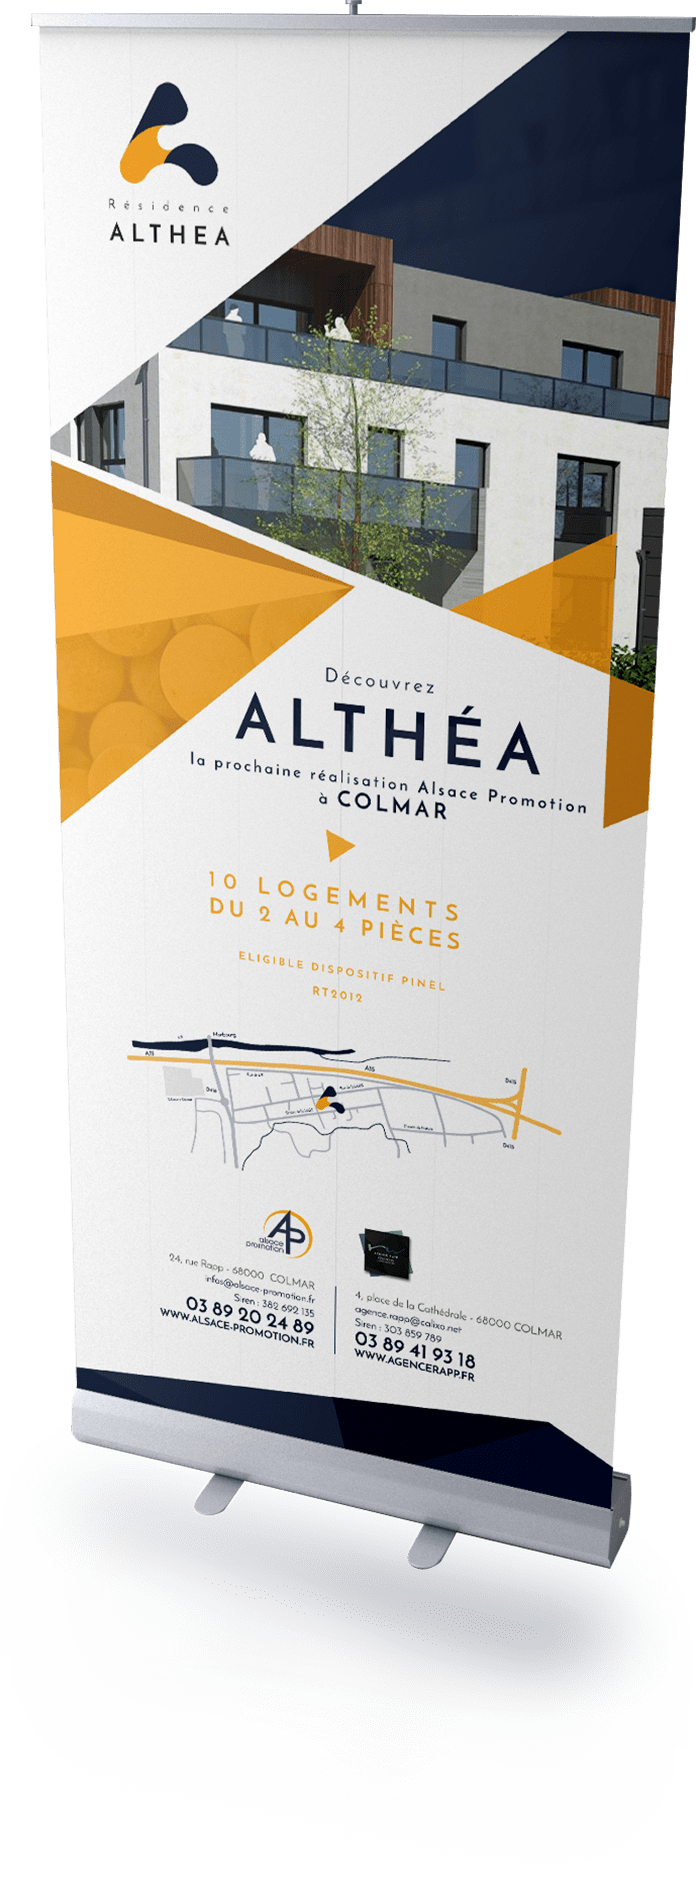 Roll up de la Résidence Althea